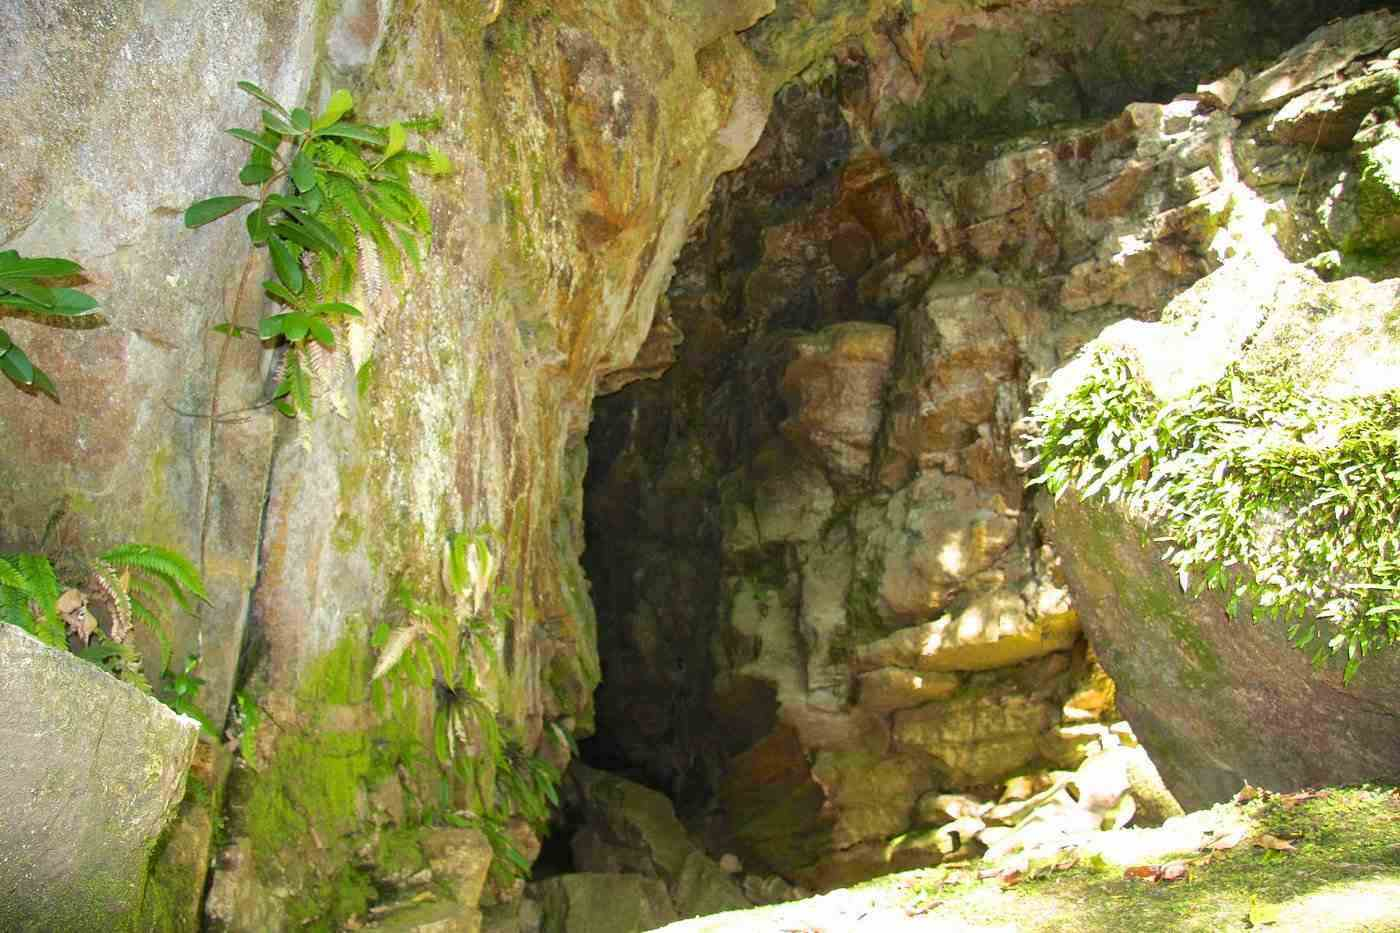 abbey caves - where to go caving in new zealand